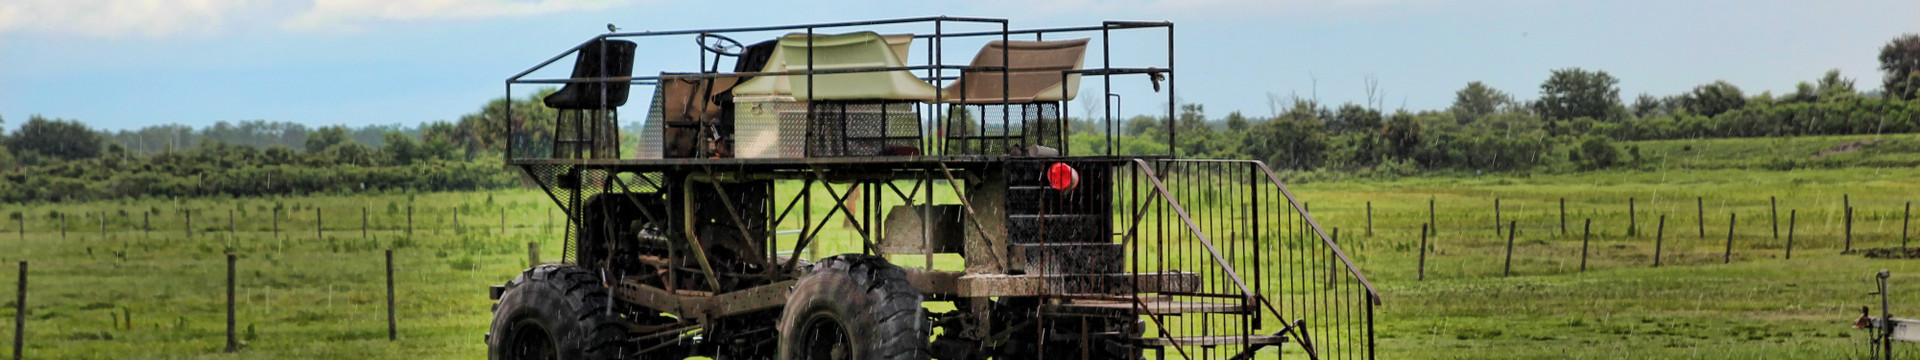 Swamp Buggy Rides near Orlando, FL | Swamp Buggy at the Ranch